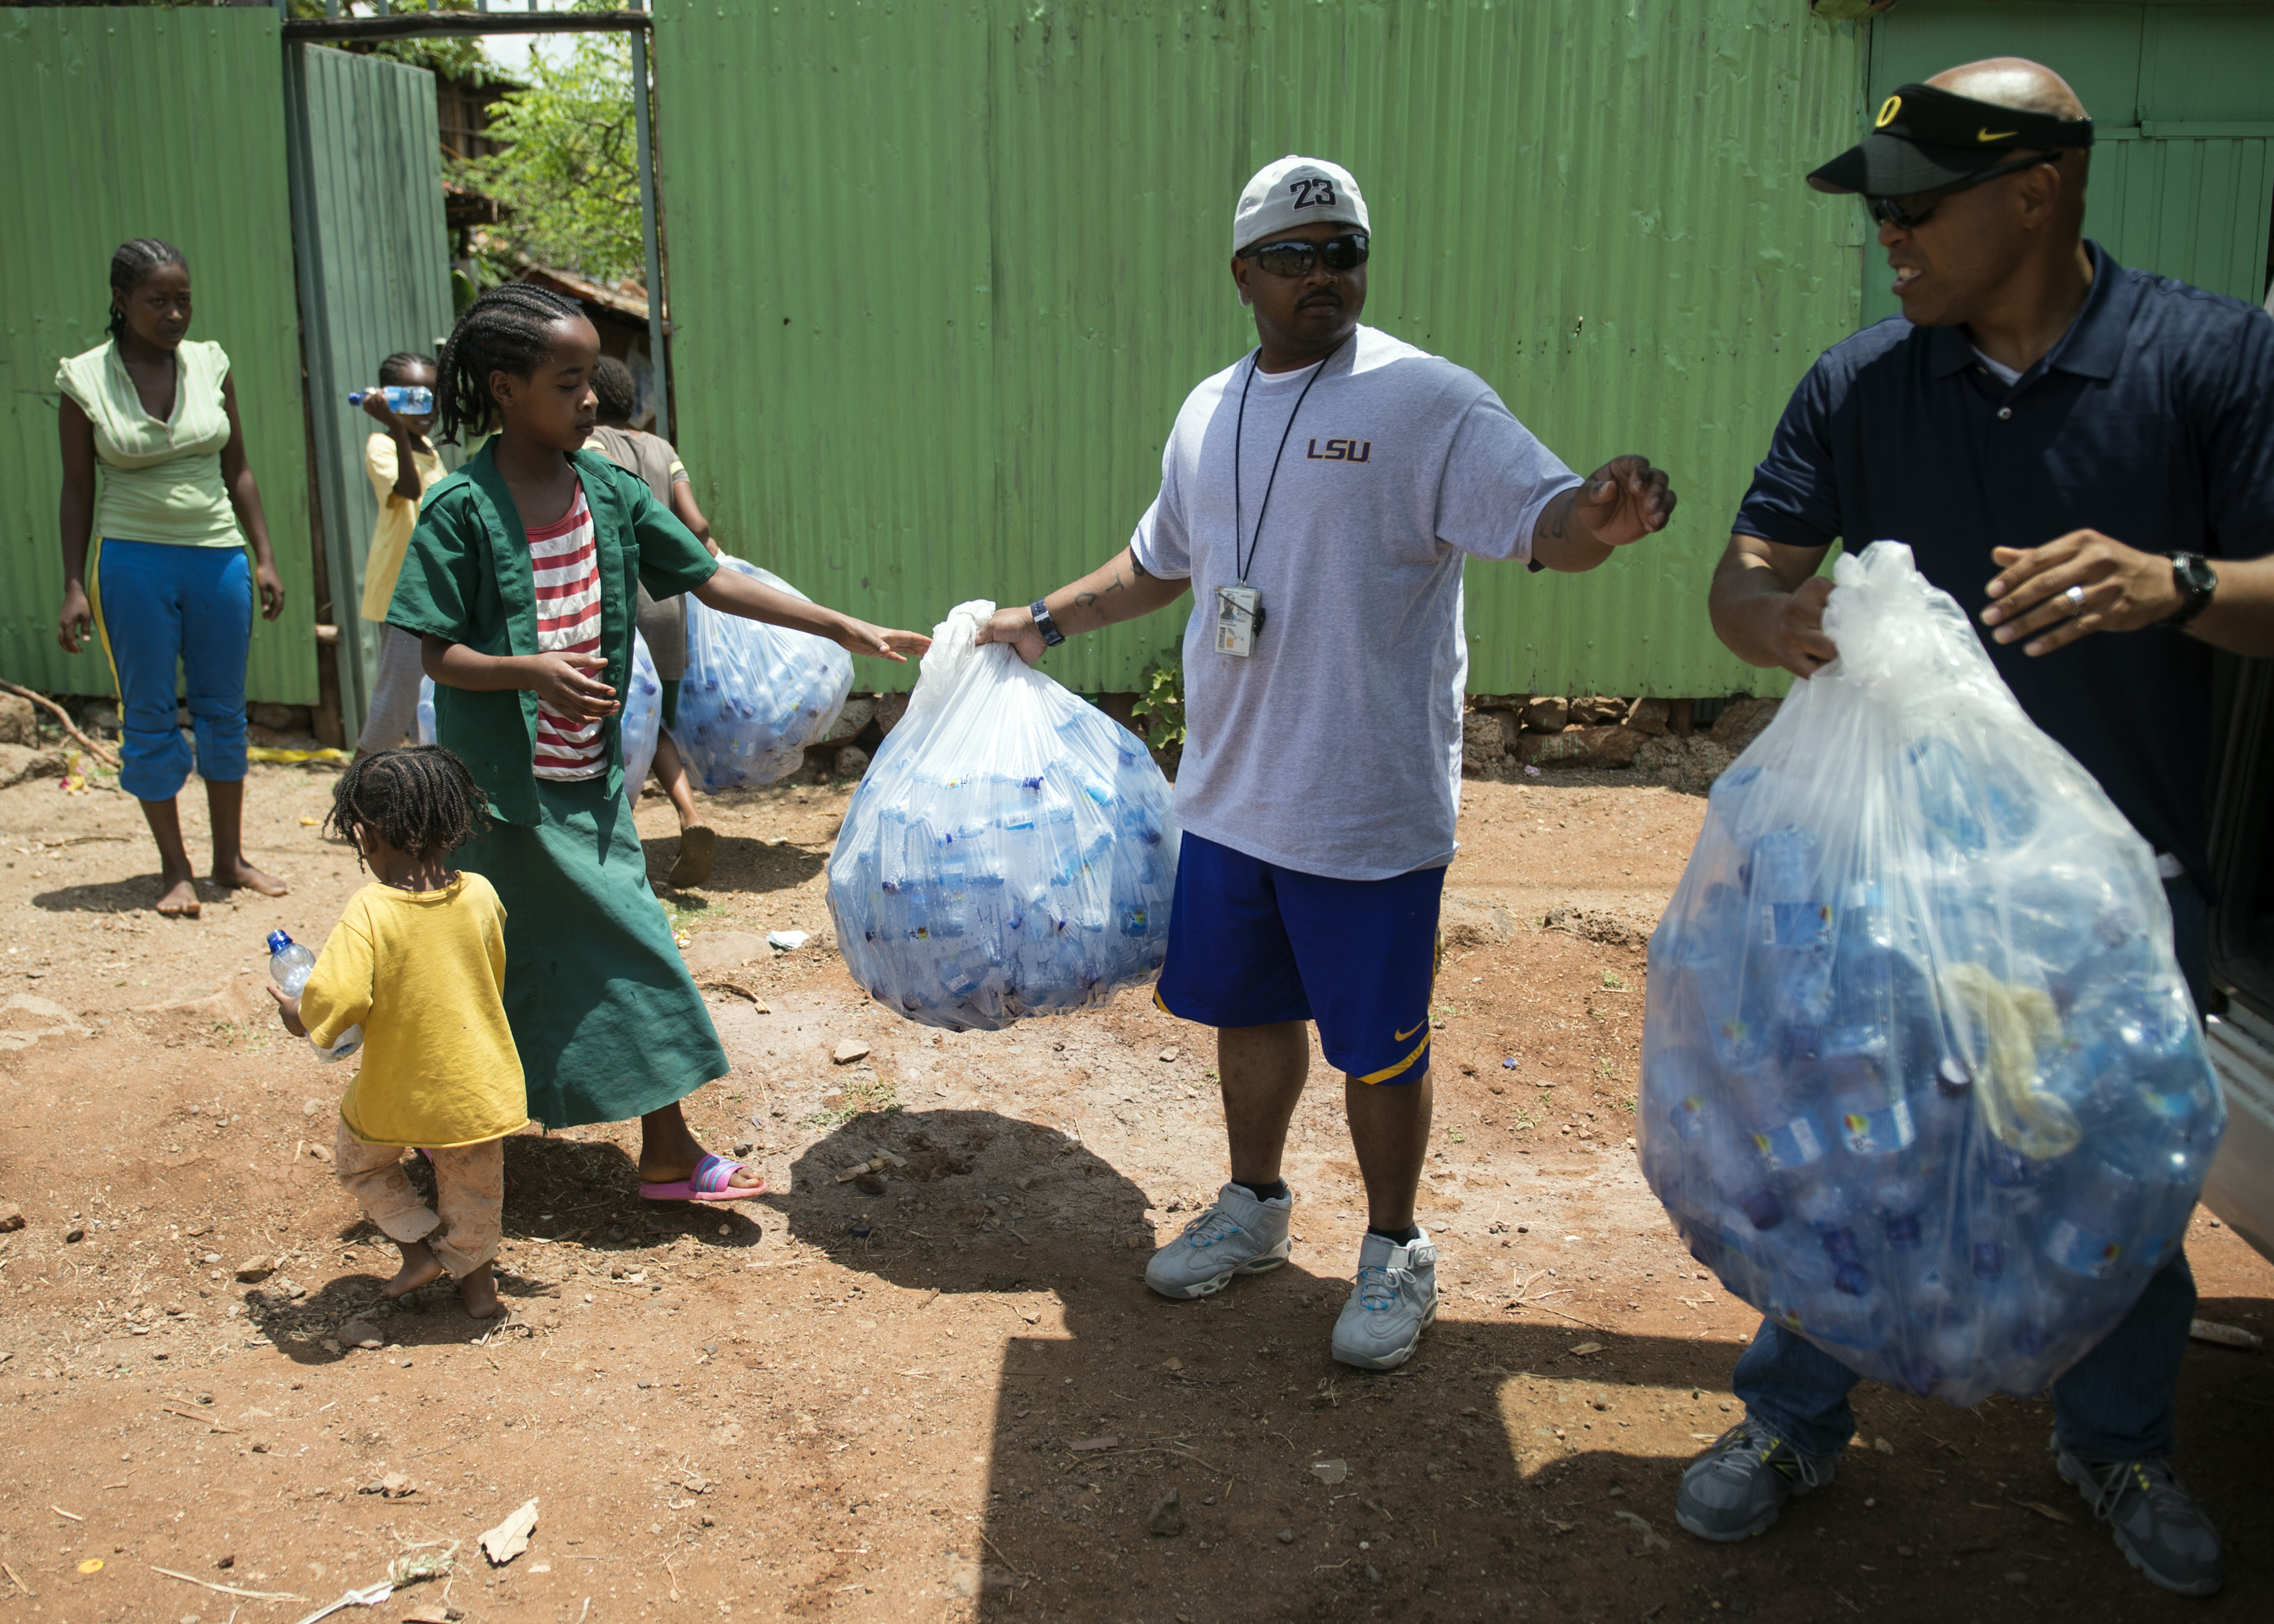 From right, U.S. Army Chaplain (Maj.) Lawrence Allison, Combined Joint Task Force-Horn of Africa Religious Affairs deputy director, and U.S. Navy Petty Officer 2nd Class Rory Carmouche, CJTF-HOA Religious Programs Specialist, hand out bags of empty bottles to an orphanage in the CJTF-HOA area of responsibility, Apr. 3, 2015. The empty water bottles will be used by the orphans to fill with water and use as a drinking containers due to limited resources. (U.S. Air Force photo by Staff Sgt. Kevin Iinuma)